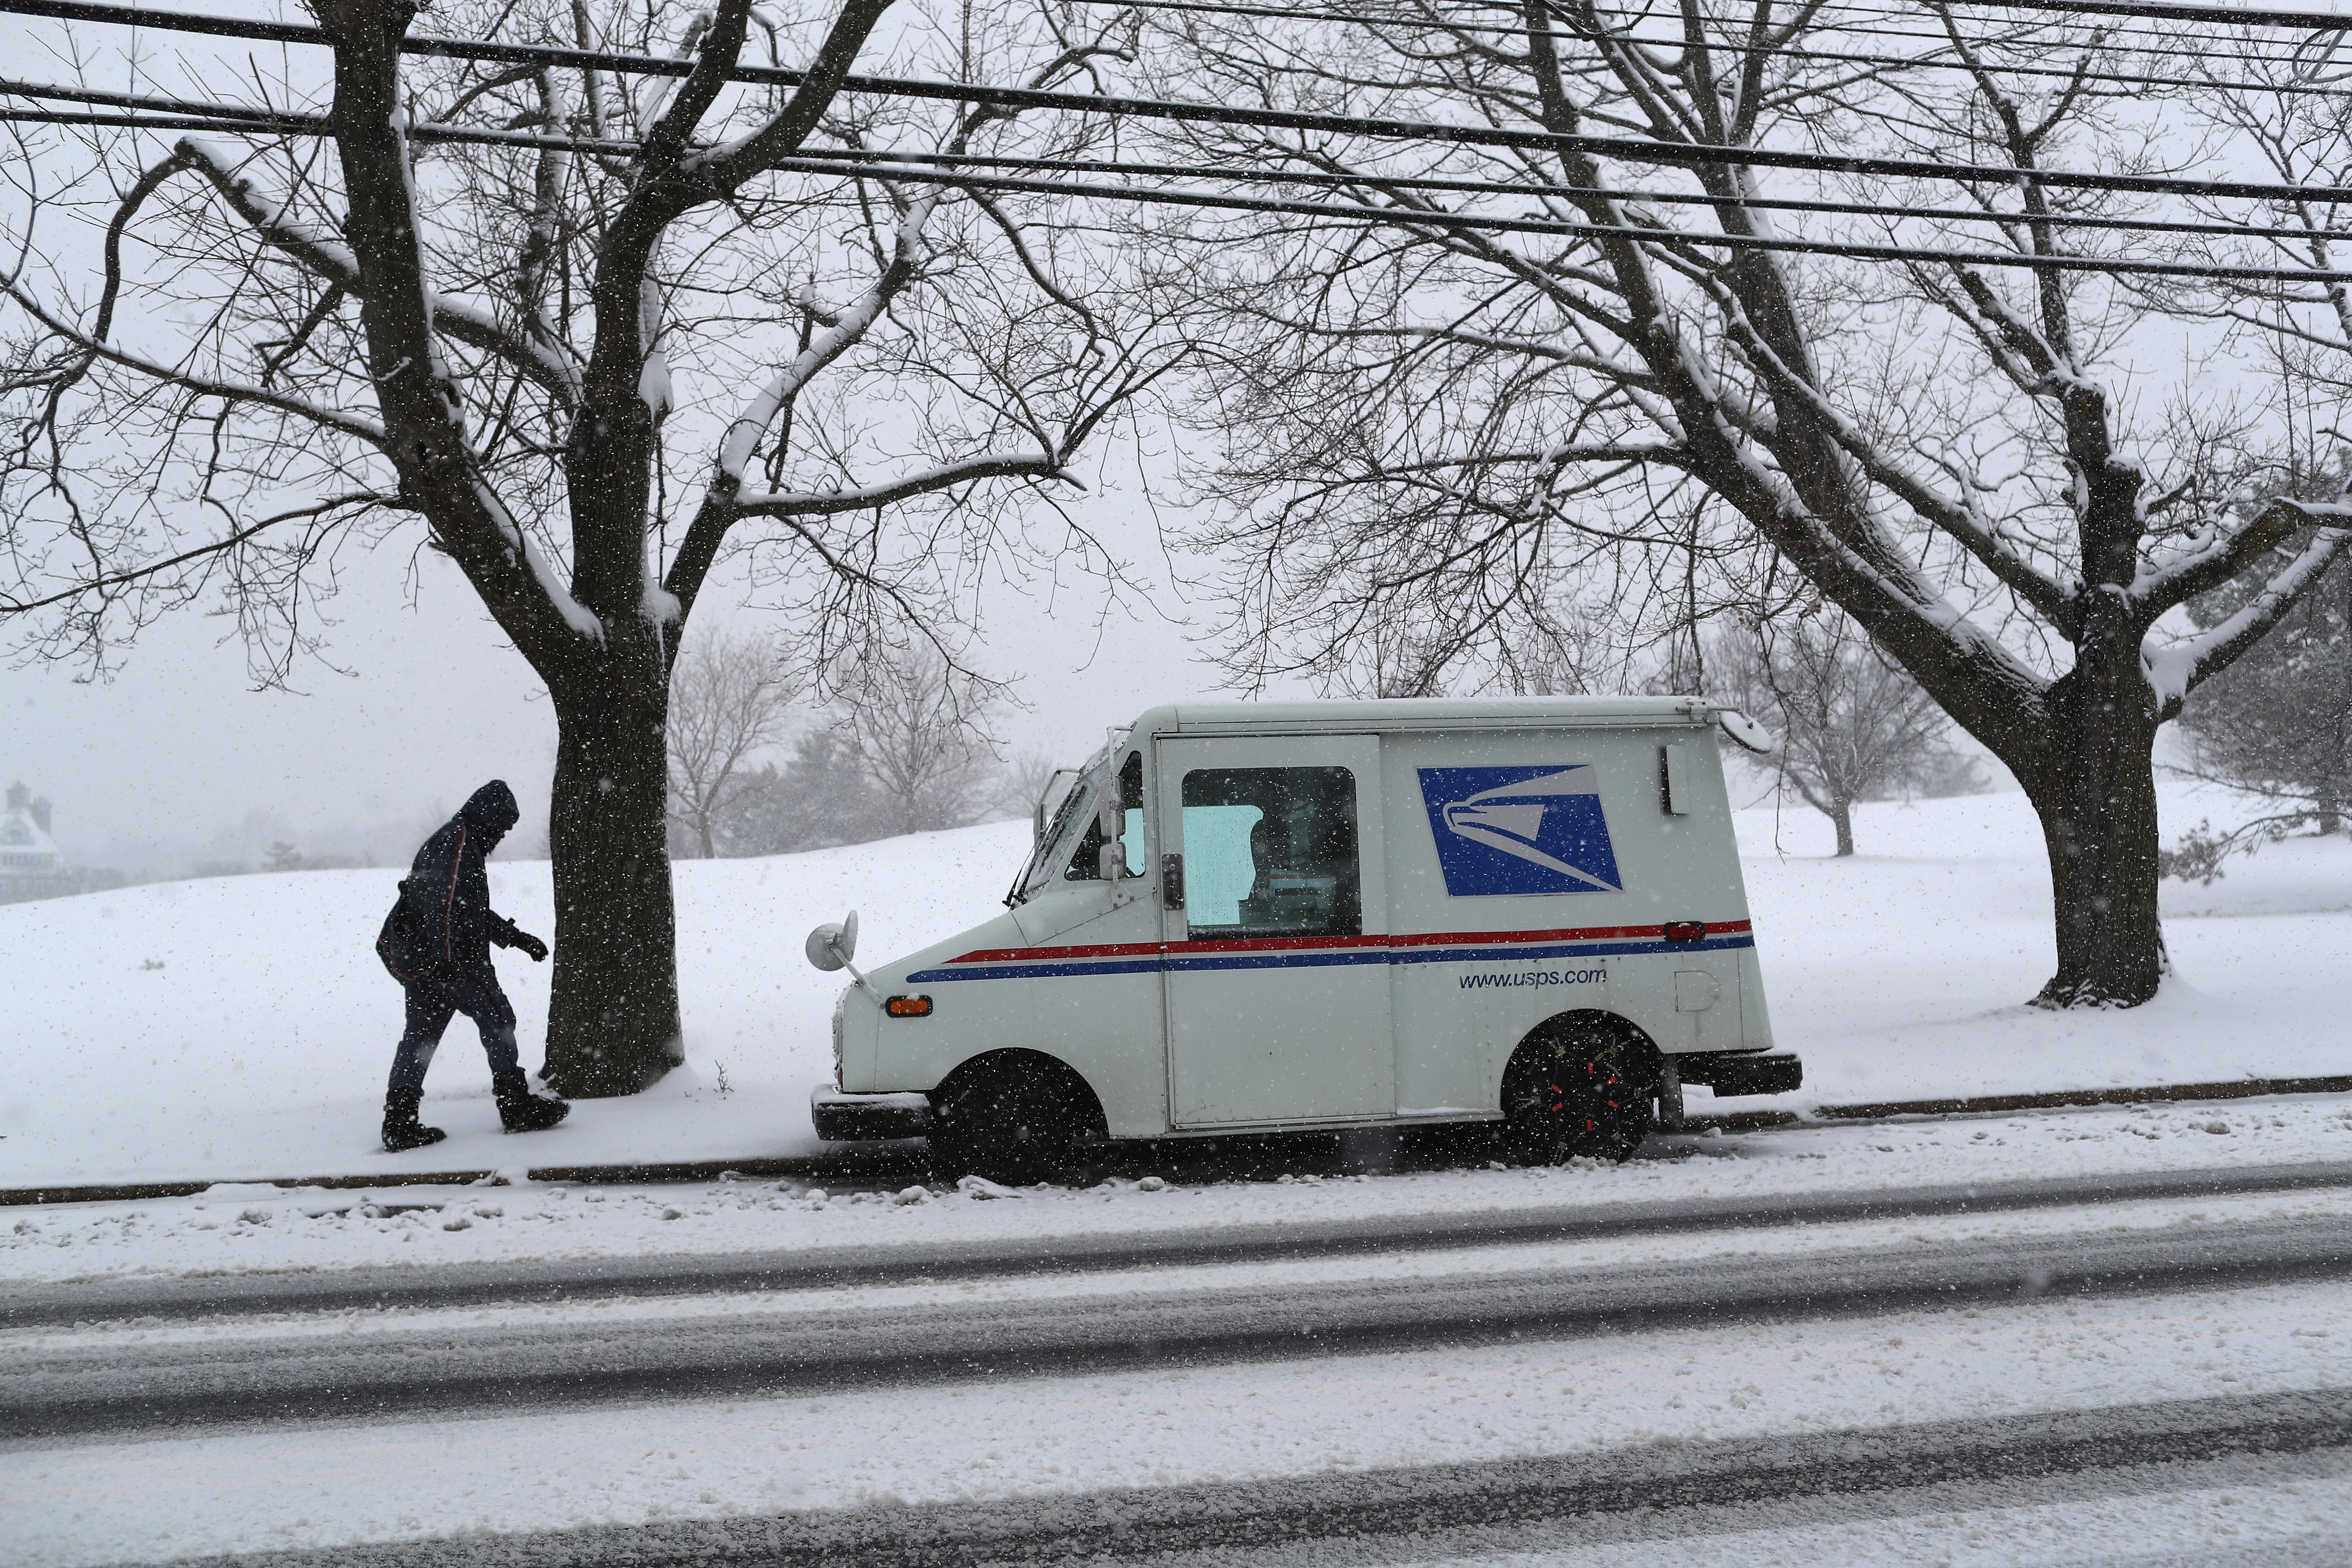 A postal worker walks through the falling snow while delivering mail on March 21, 2018. Mail service has been suspended today in parts of the Midwest.